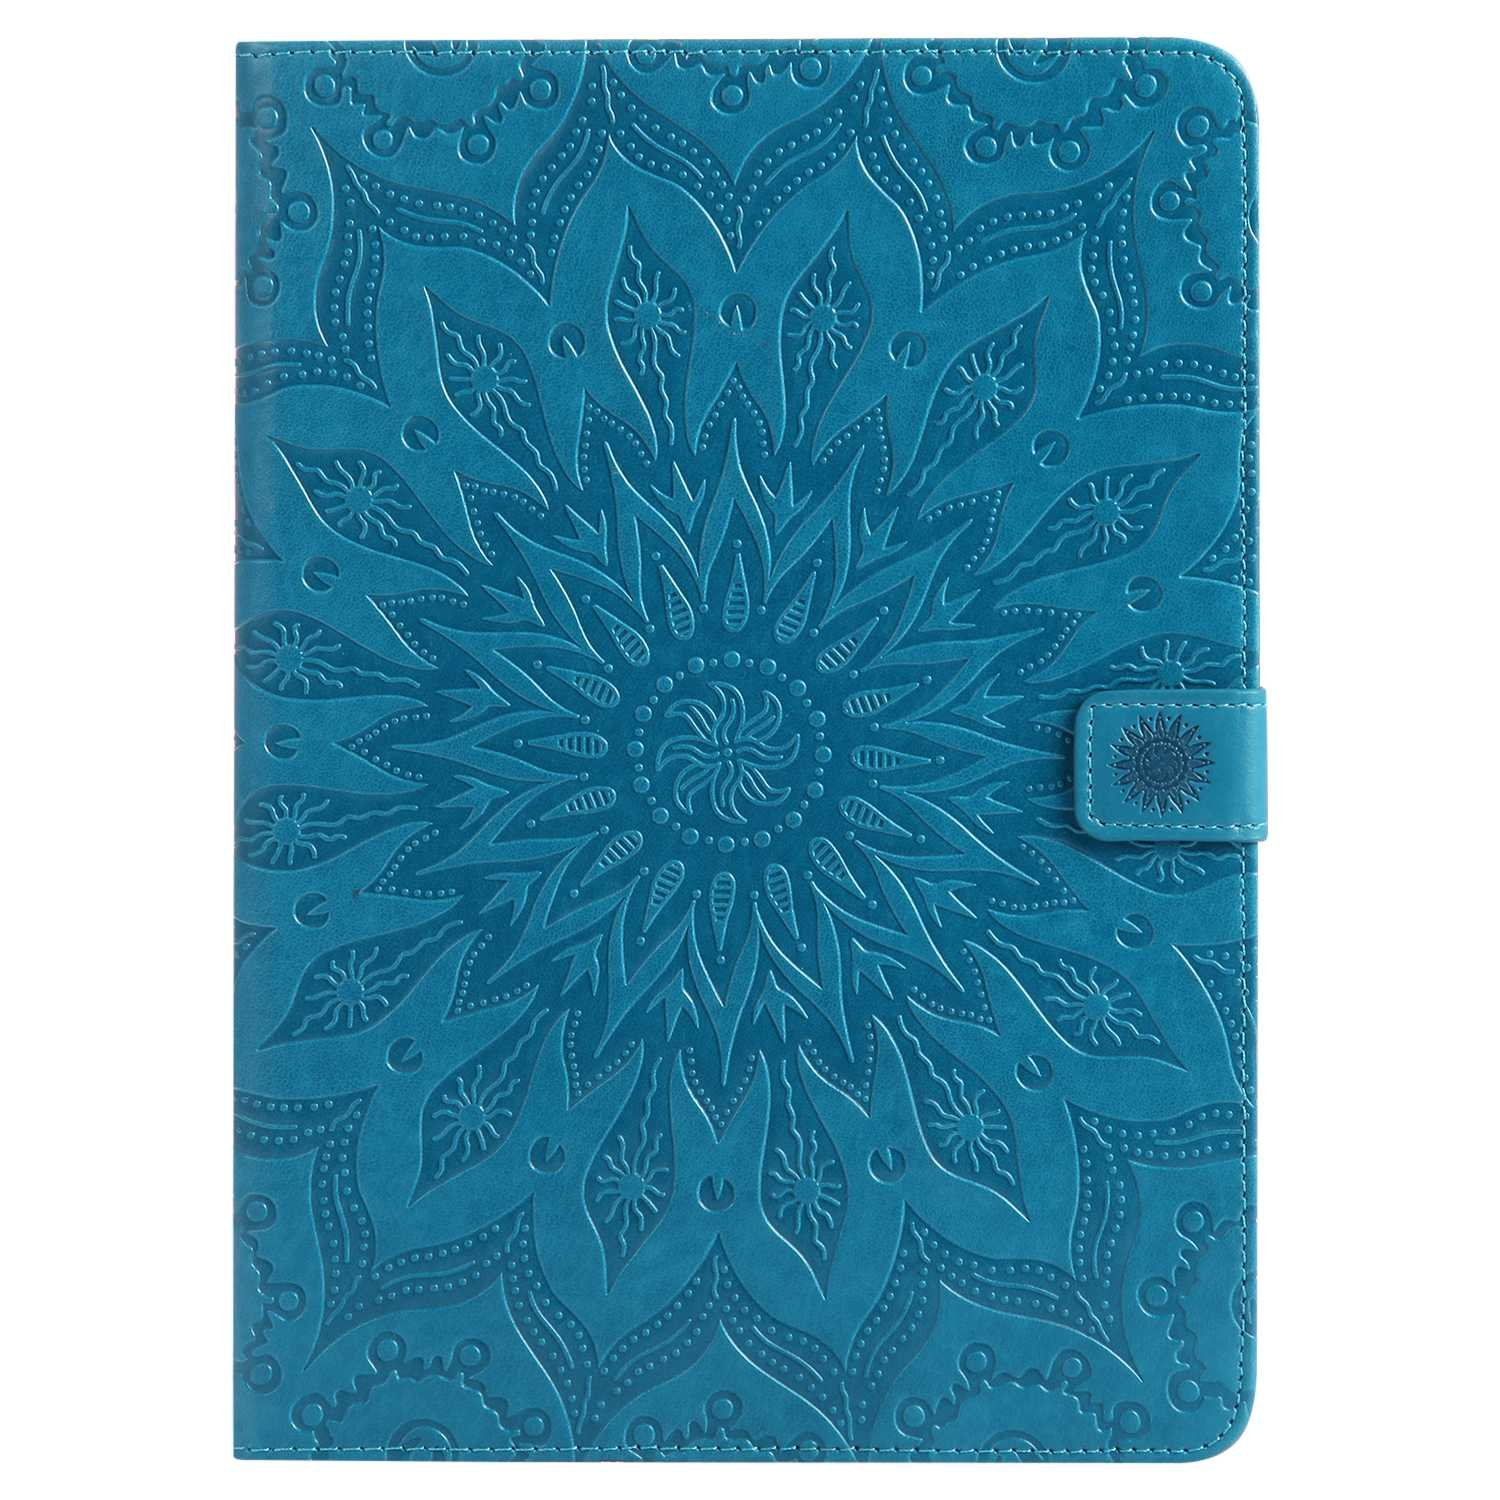 Bear Village iPad Pro 9.7 Inch Case, Anti Scratch Shell with Adjust Stand, Full Body Protective Cover for Apple iPad Pro 9.7 Inch, Blue by Bear Village